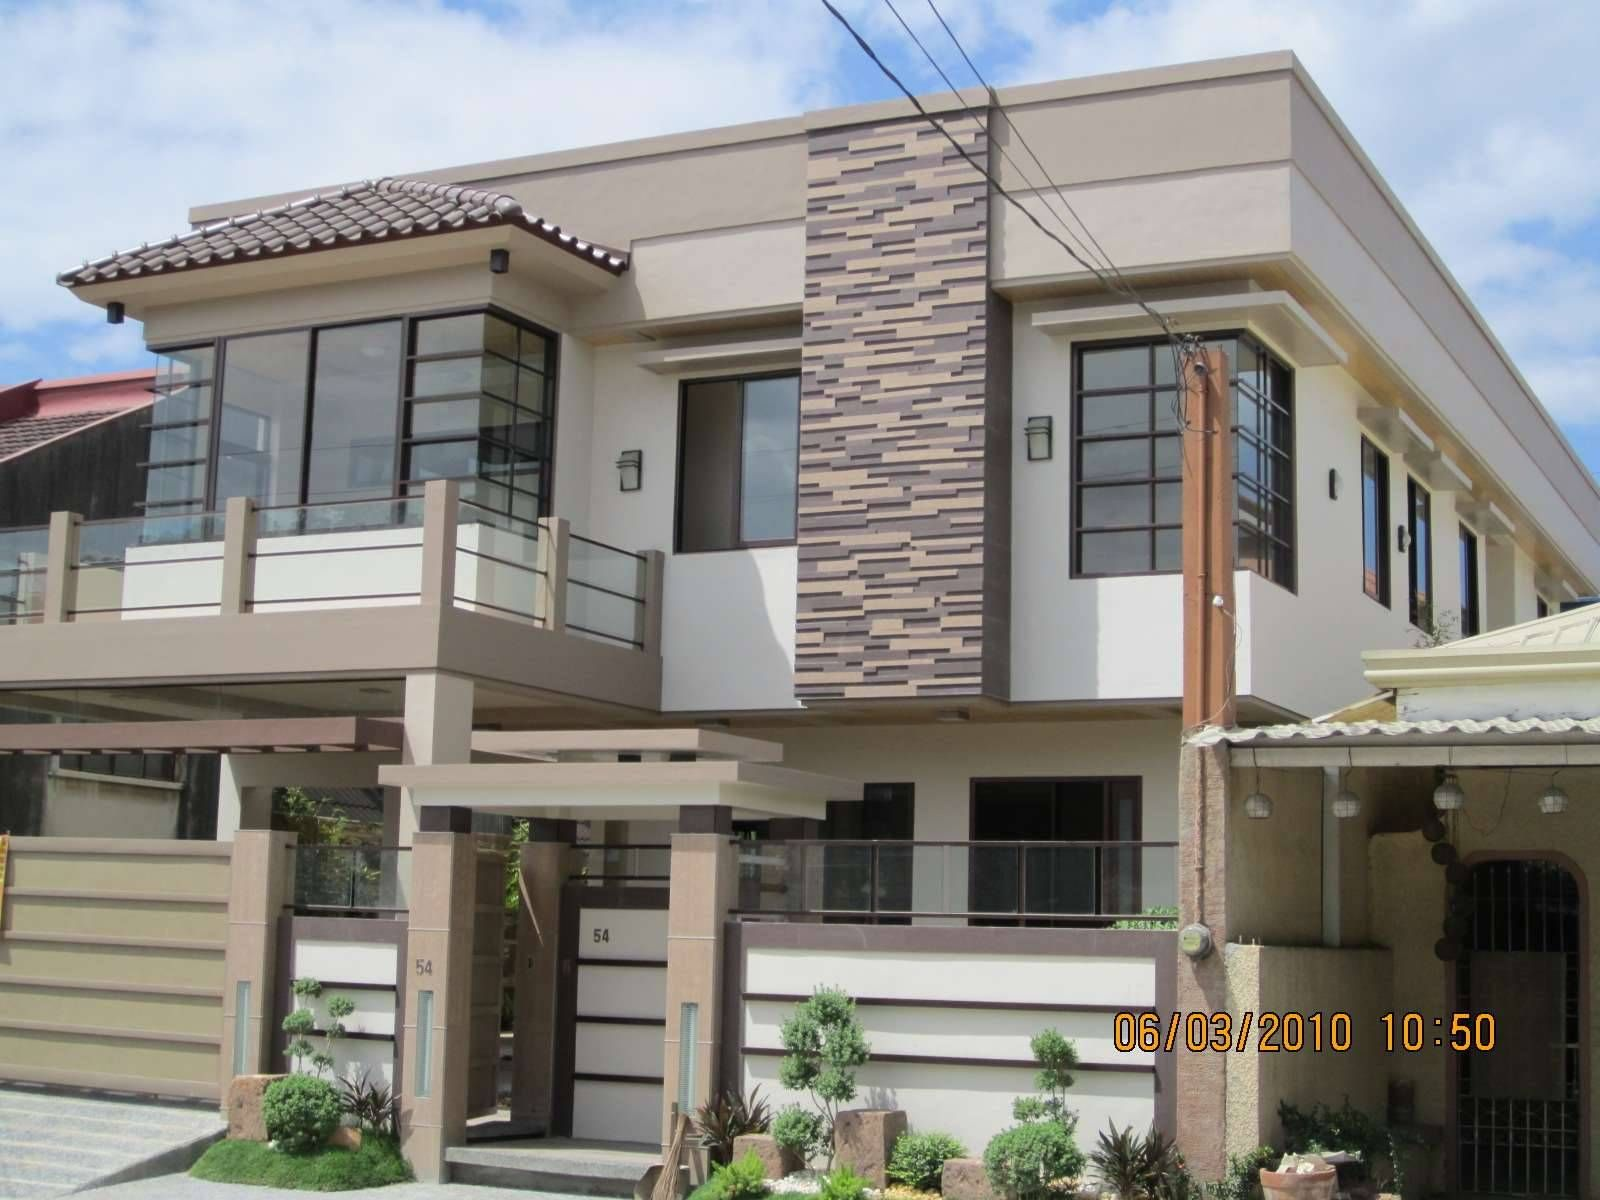 Philippines modern house exterior design dream house for Exterior house design for small spaces